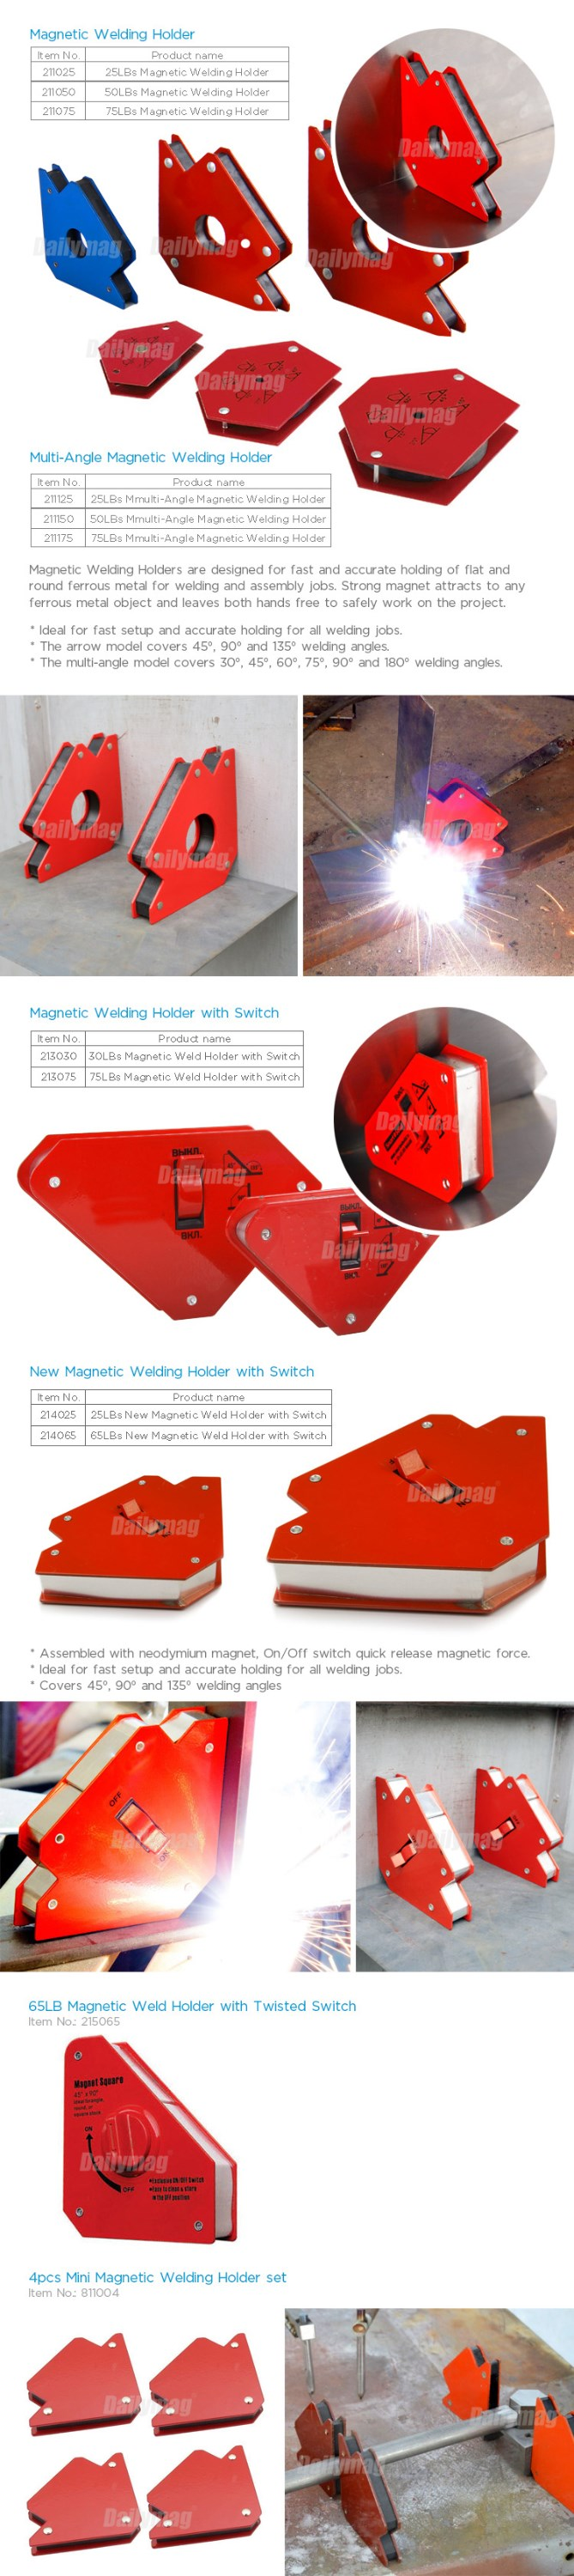 75 LB Magnetic Welding Holder /Welding Angle Magnet